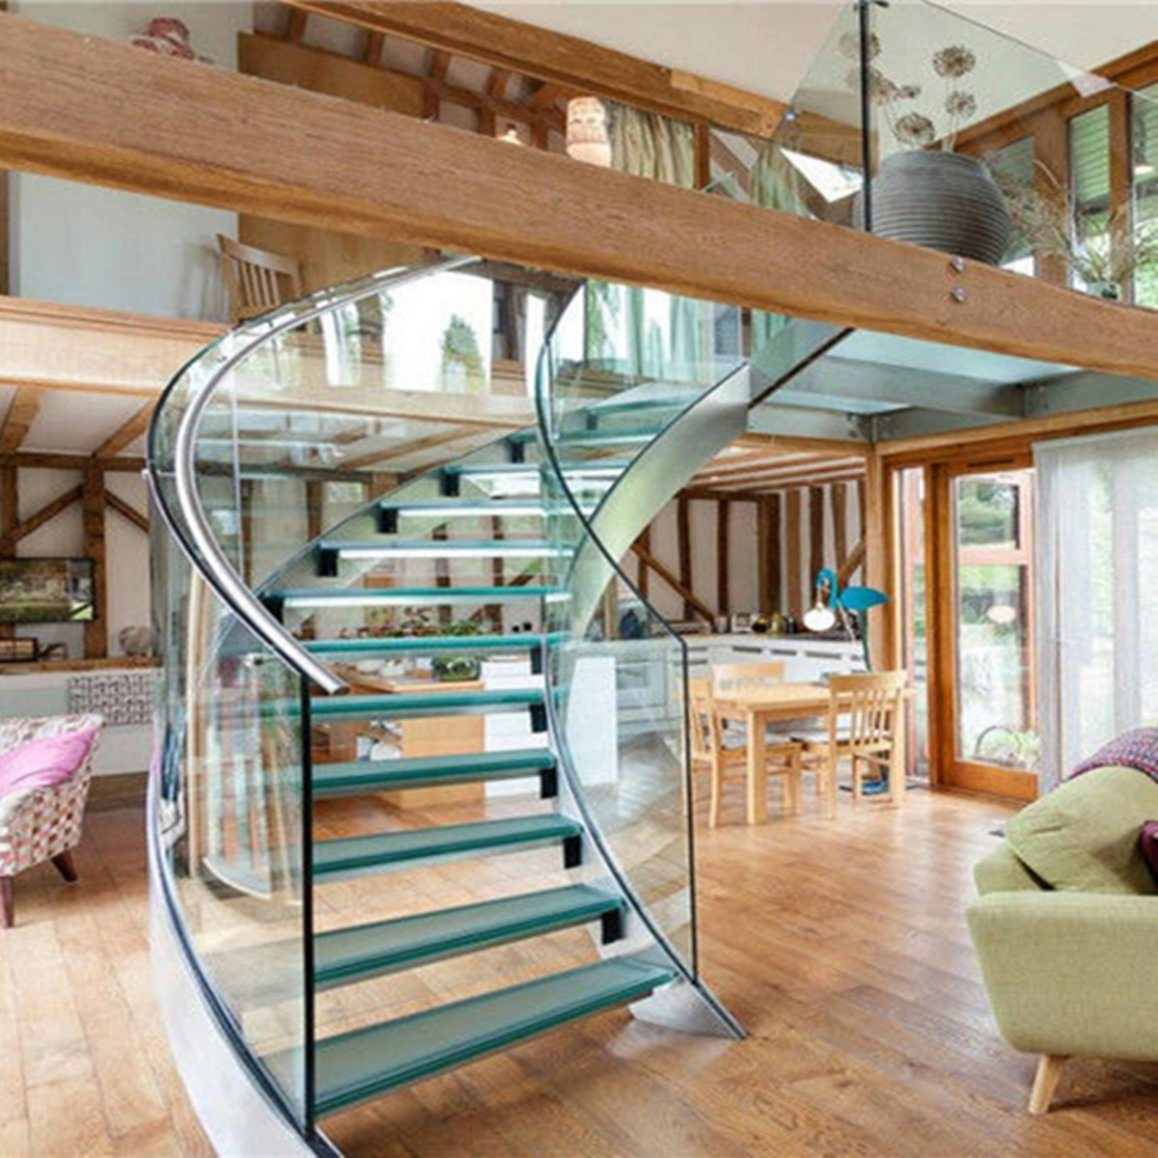 Best Price Curved Glass Staircases With Bent Glass Railing Glass | Glass Railing For Stairs Price | Curved Glass Balustrade | China | Spiral Staircase | Frameless Glass | Cable Railing